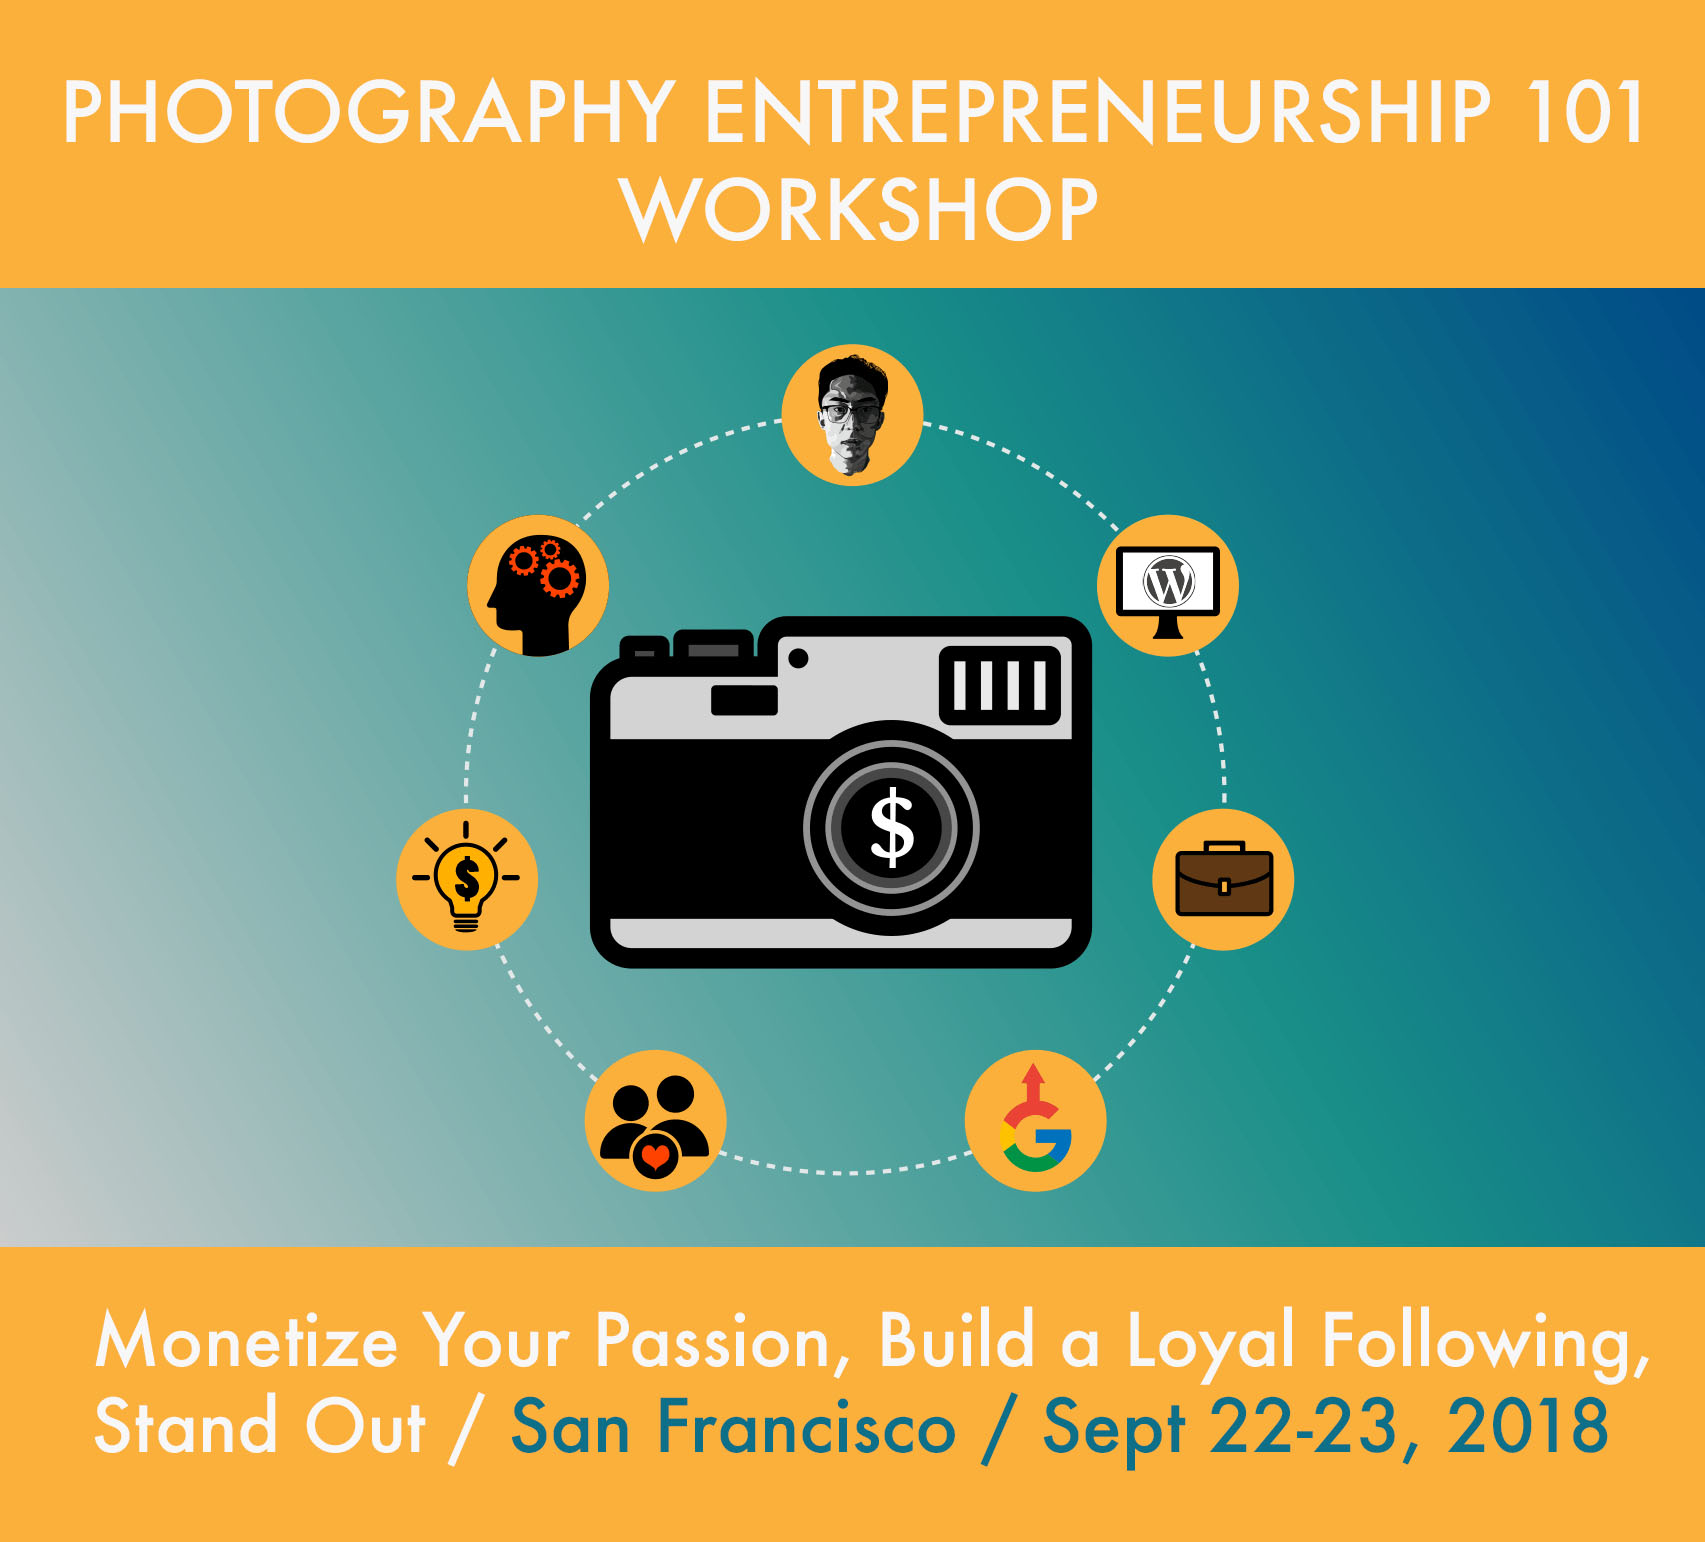 Photography Entrepreneurship 101 Workshop- San Francisco